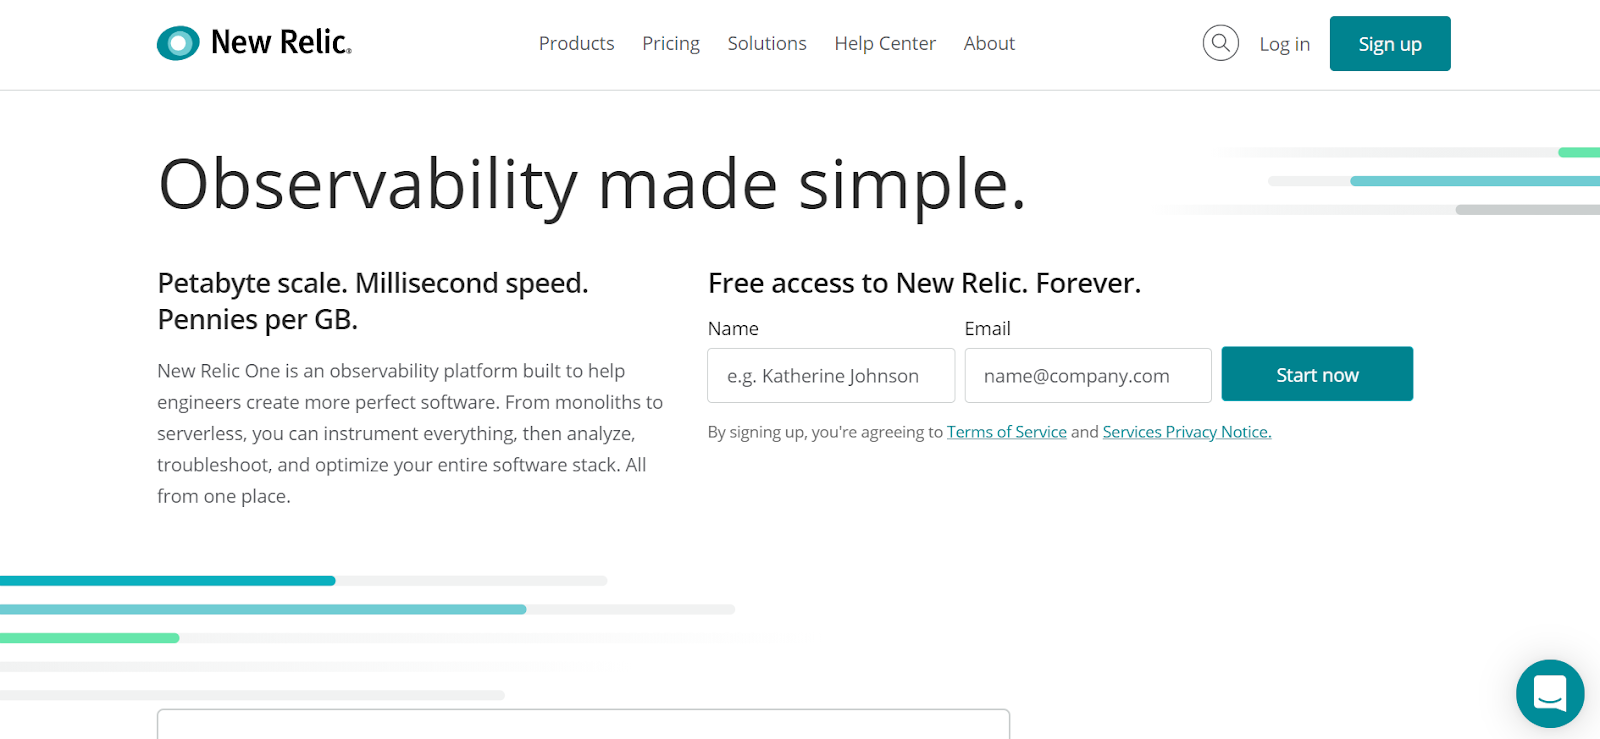 New Relic is one of the best Application Performance Monitoring Tools in the market